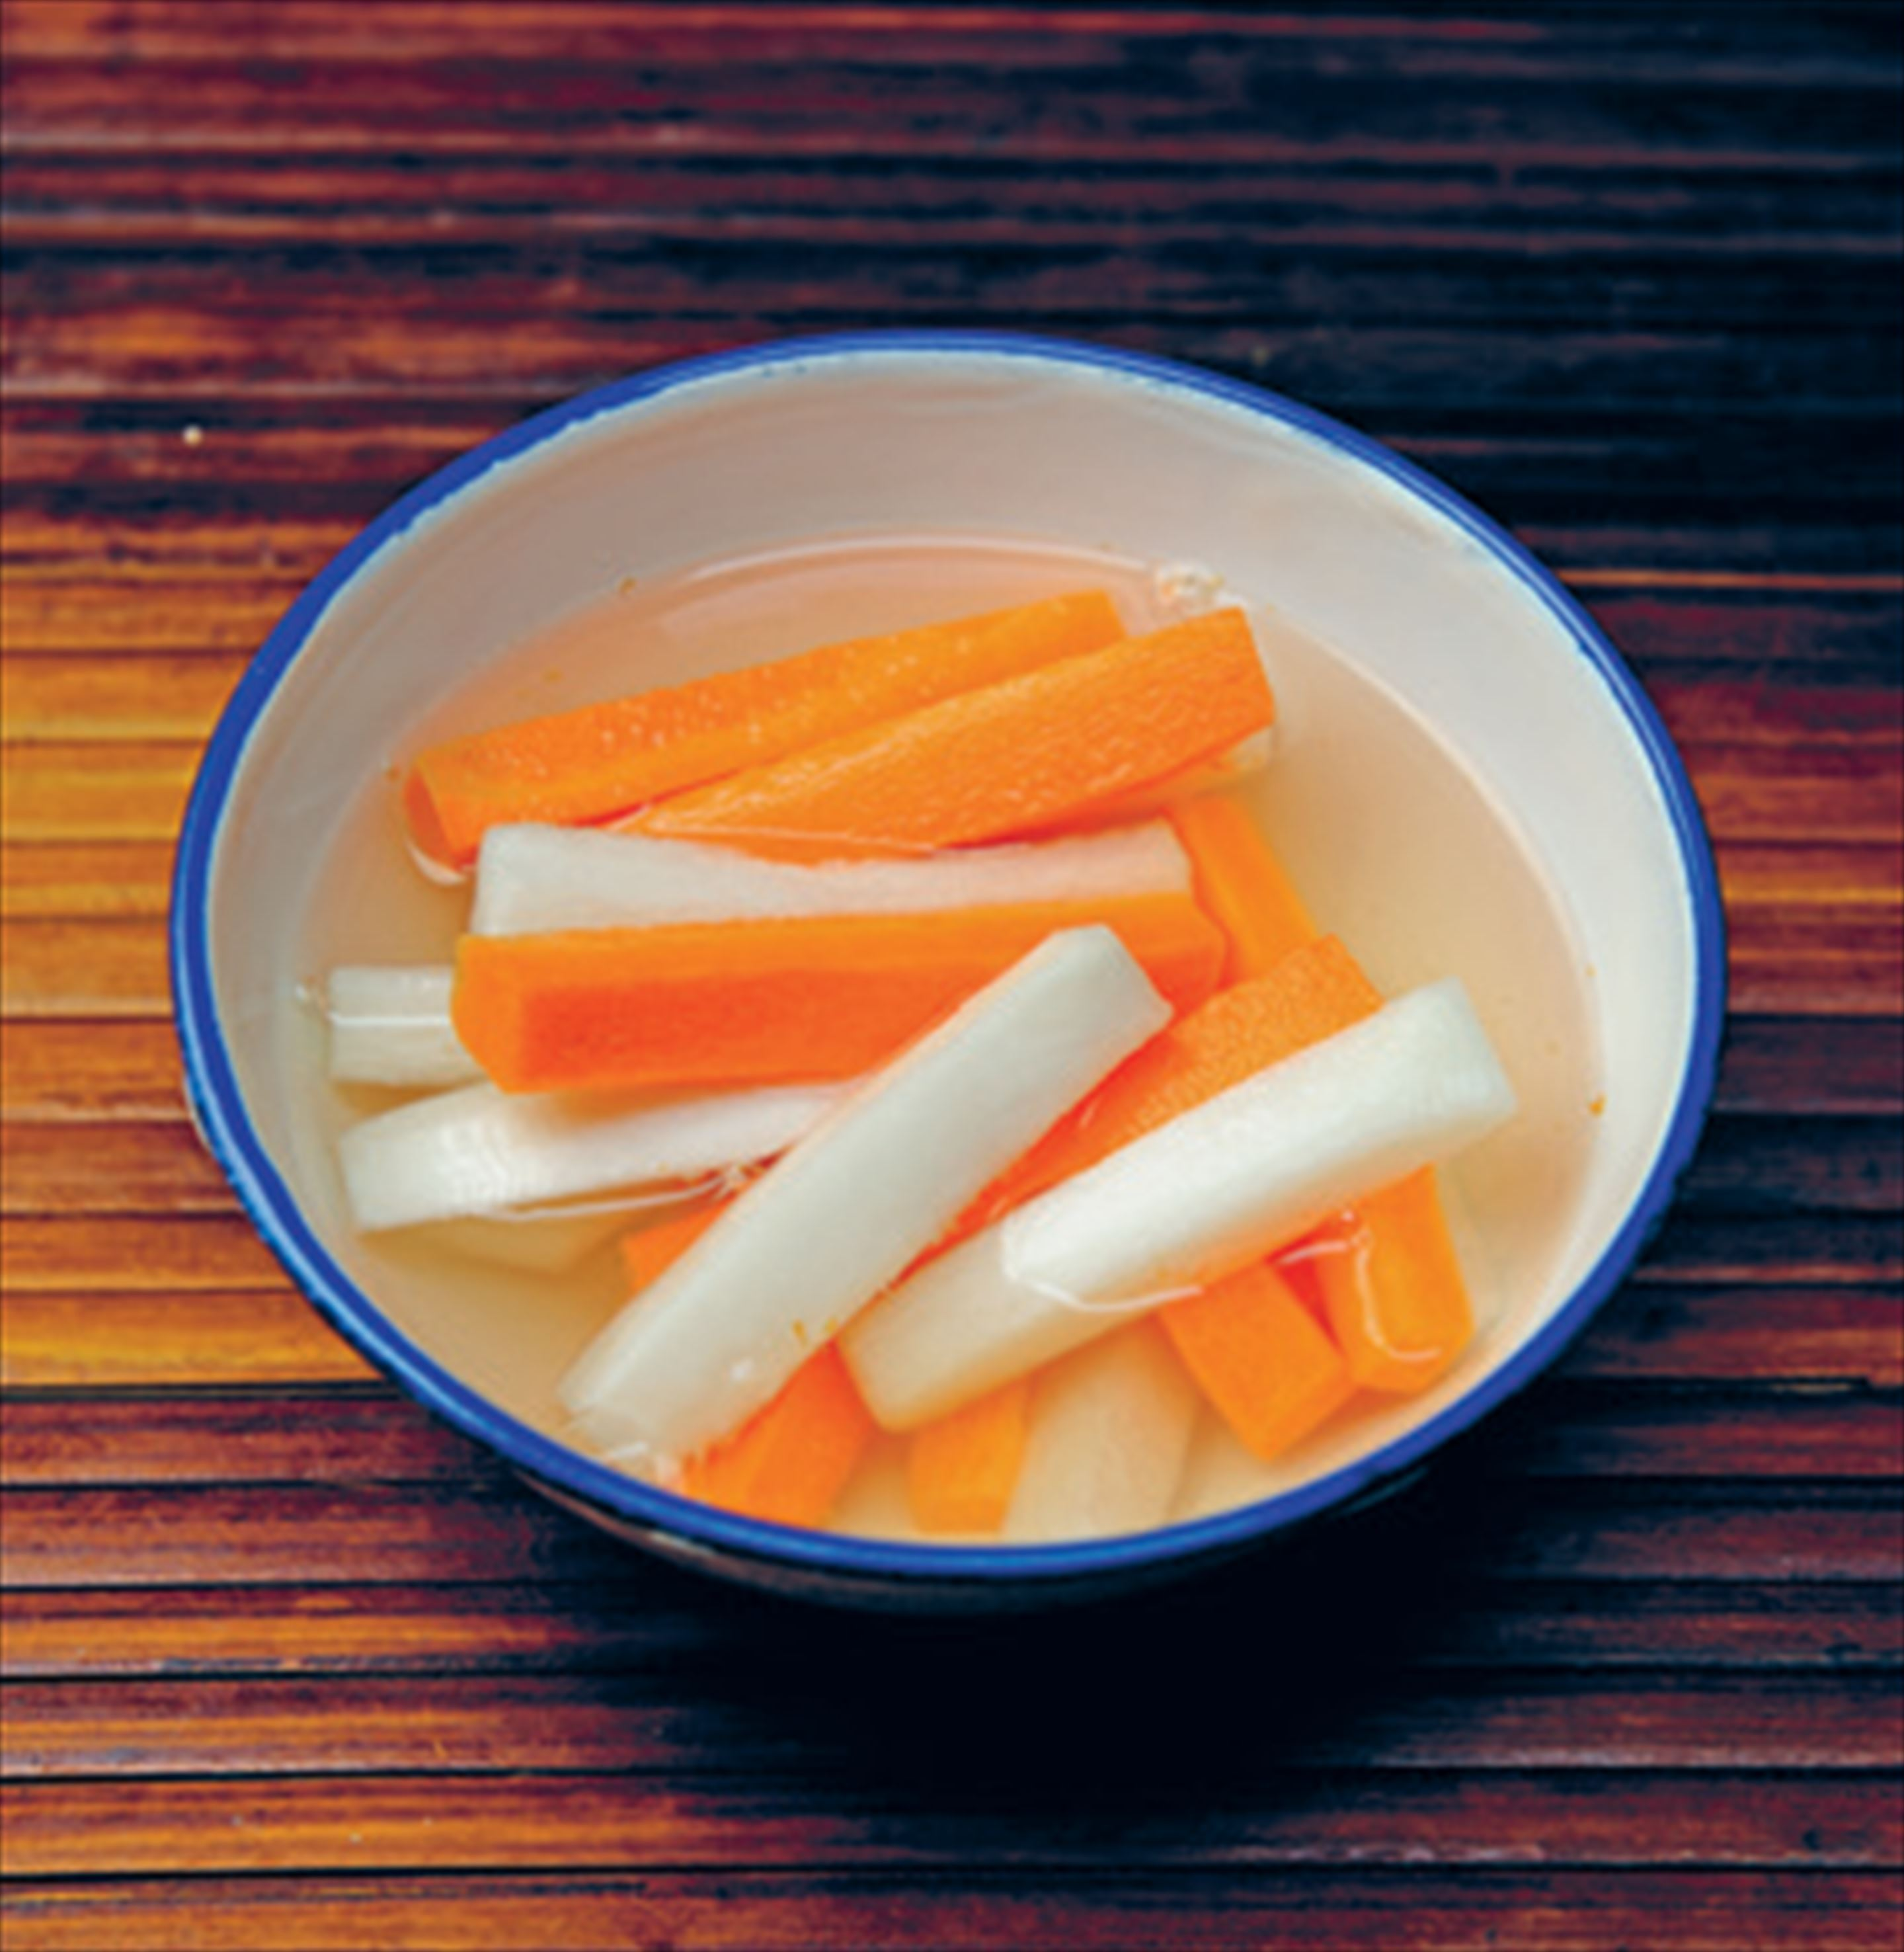 Carrot and daikon pickle